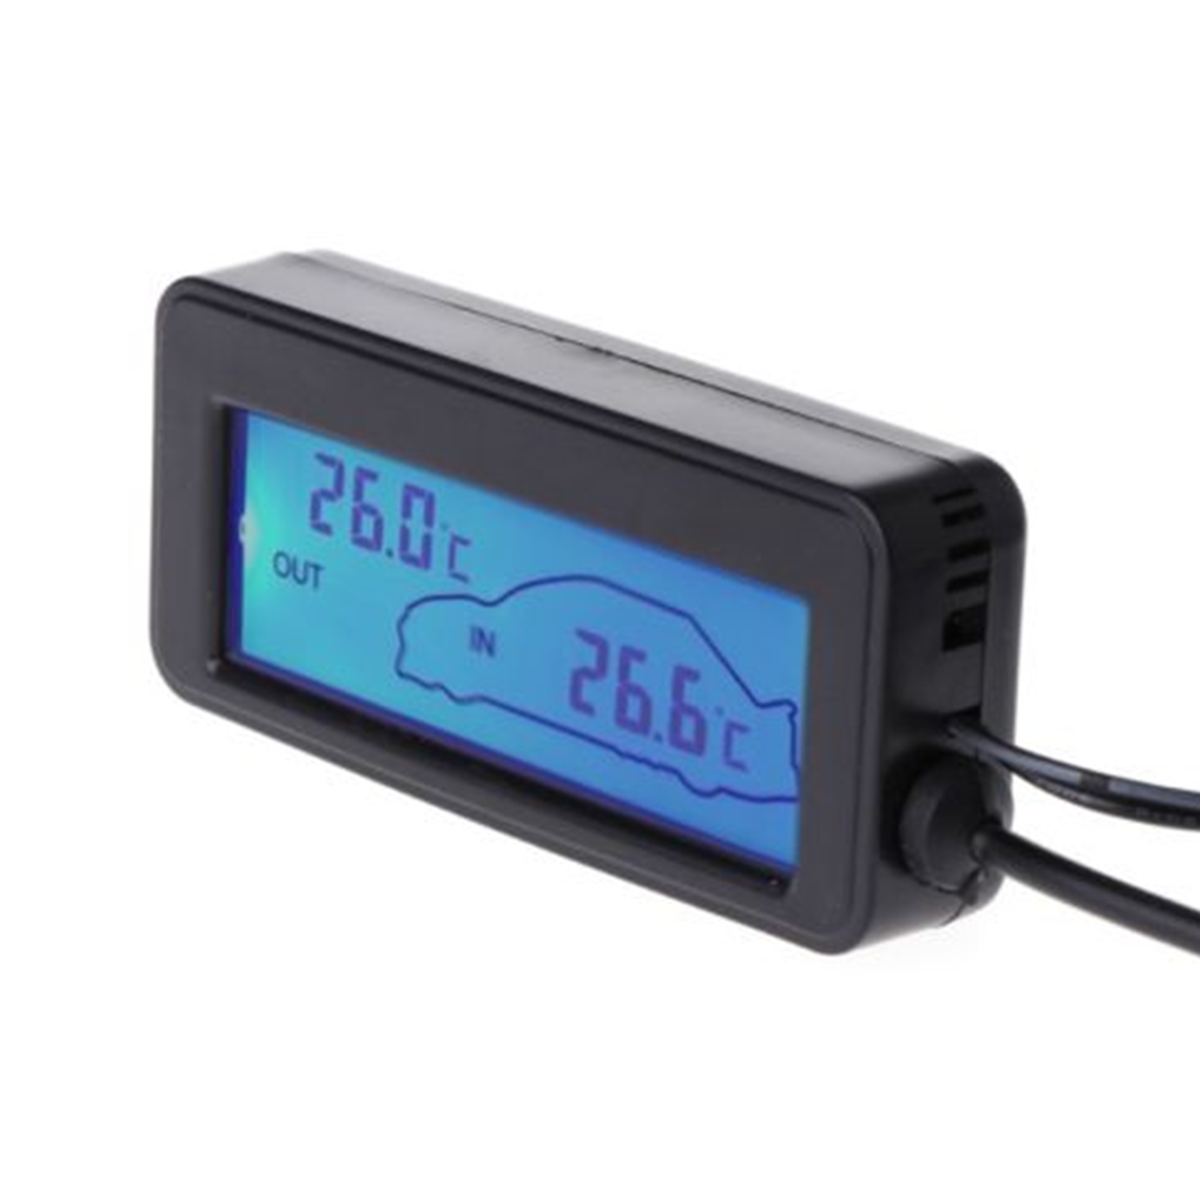 1PC Mini LCD Display Digital Thermometer Car Inter/Exter Thermometer Embedded Electronic Digital Thermometer 35